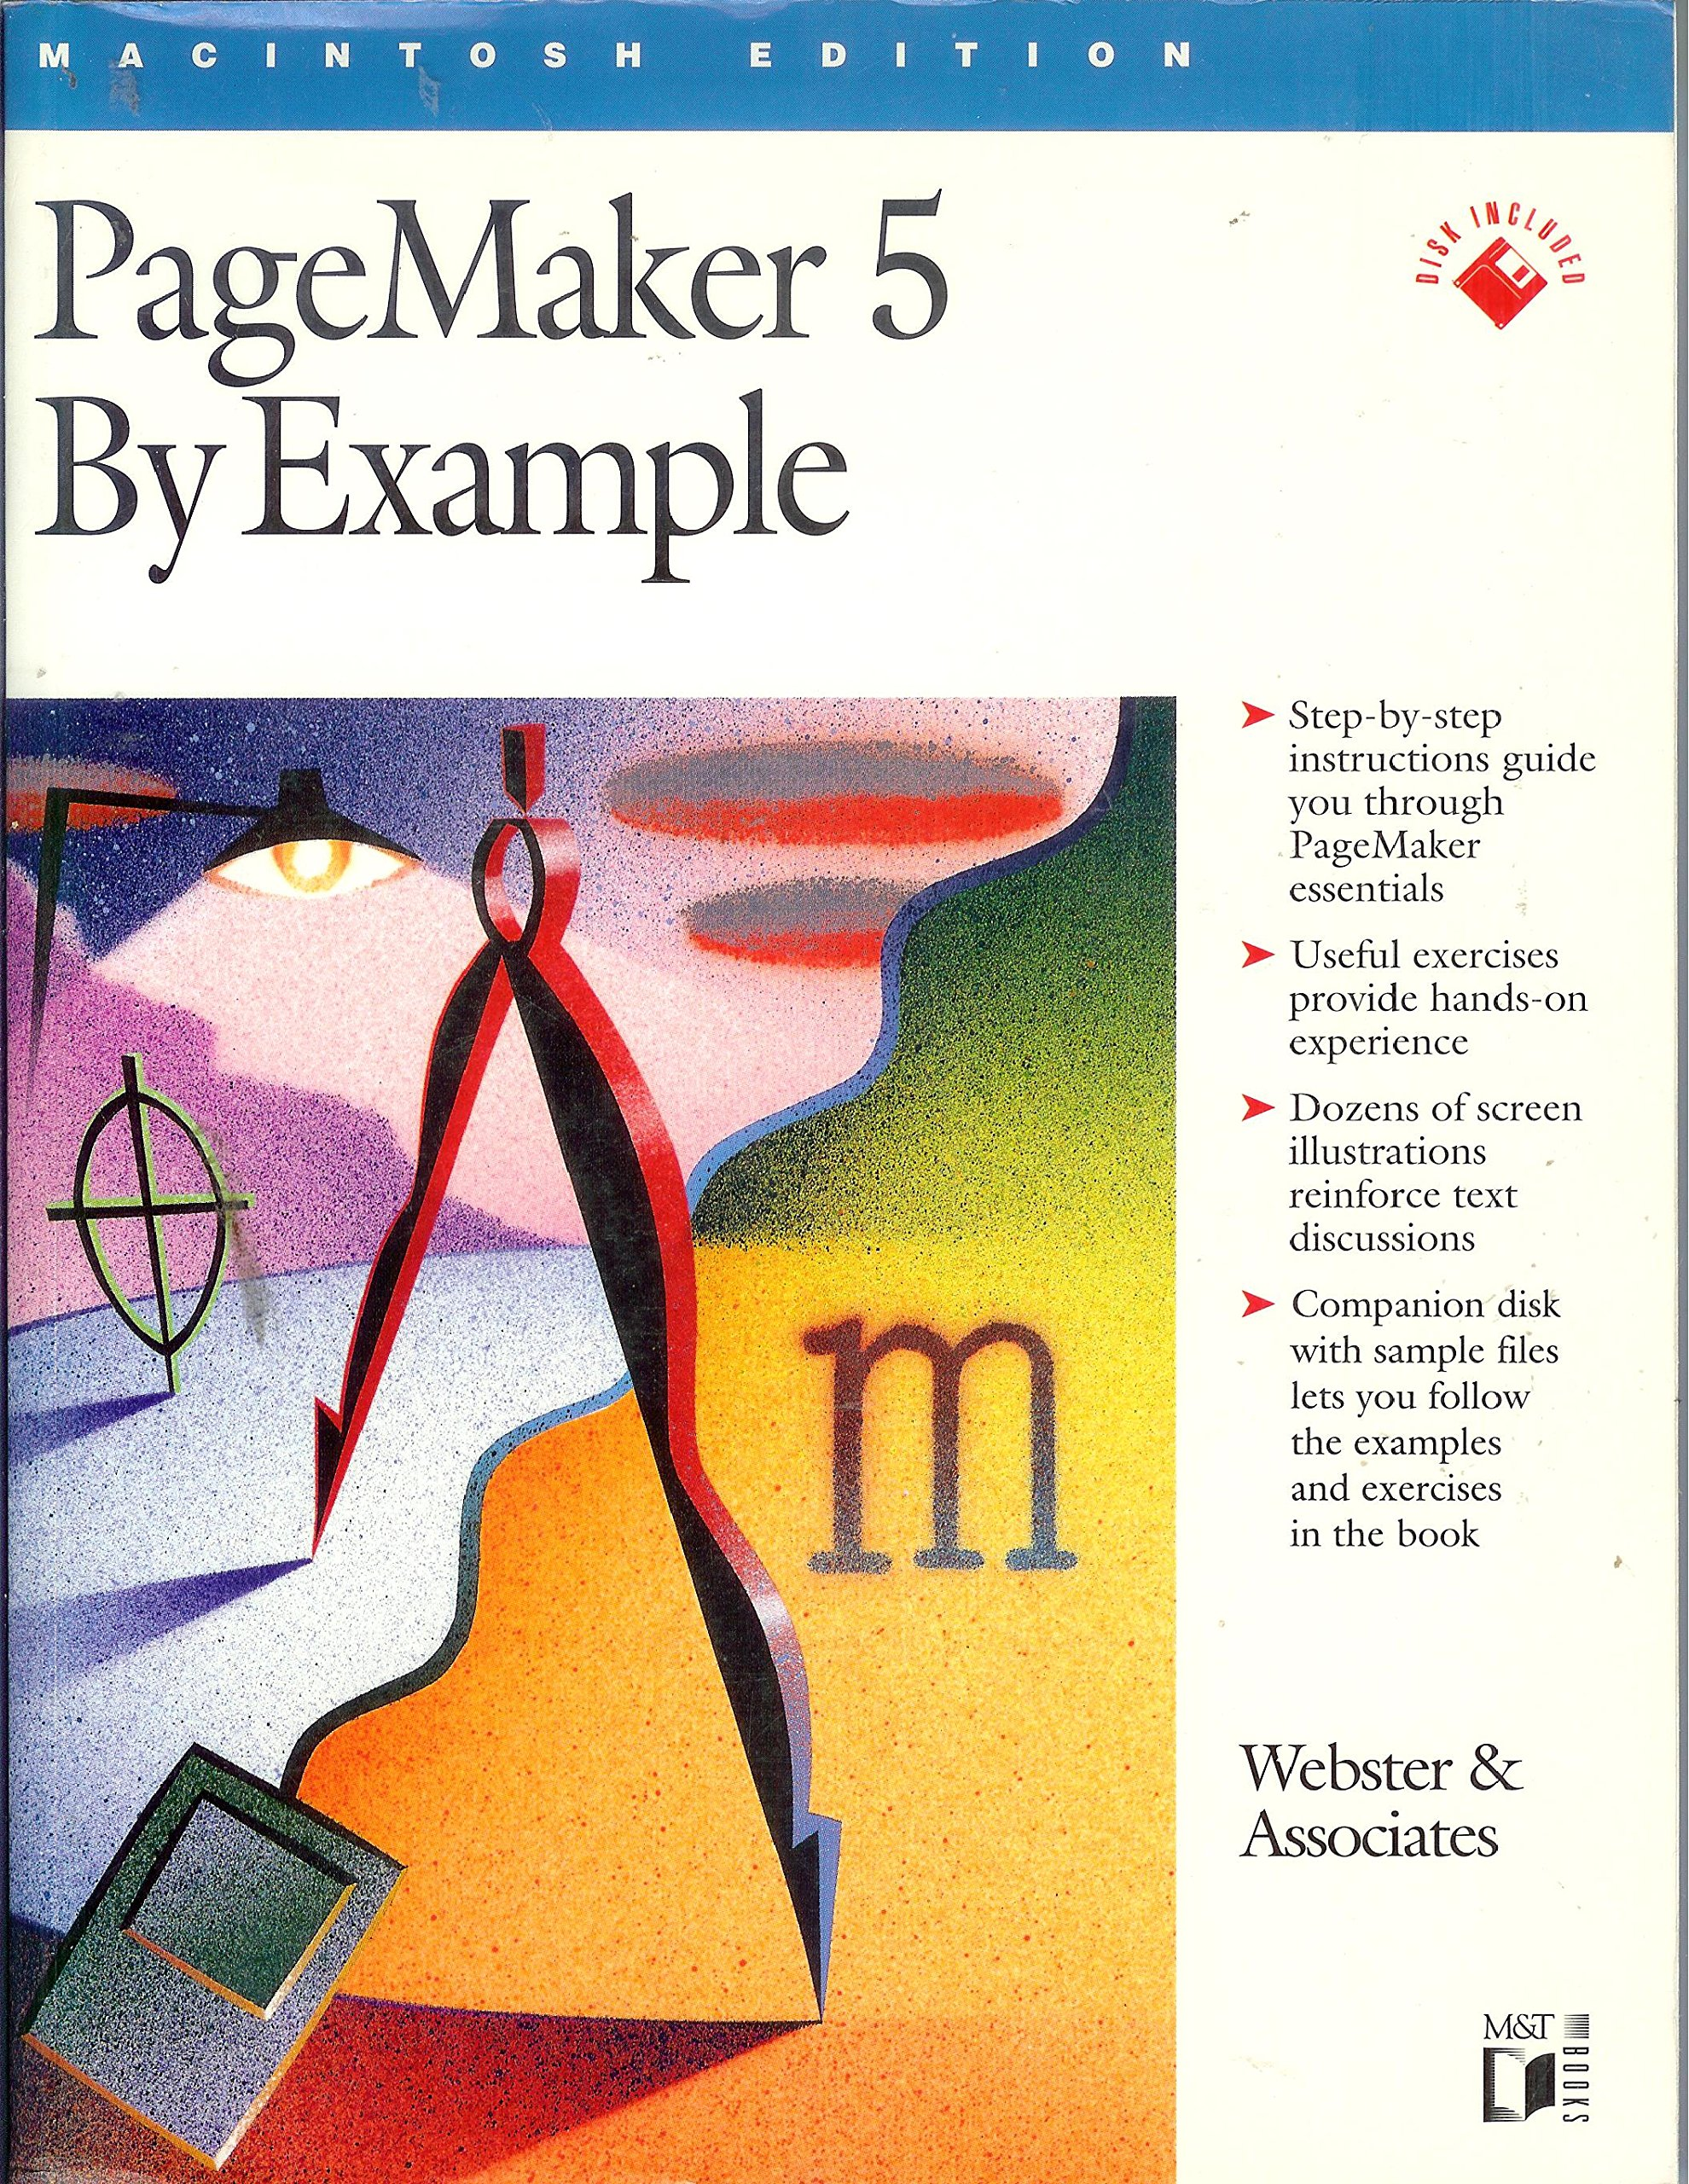 pagemaker 5 by example